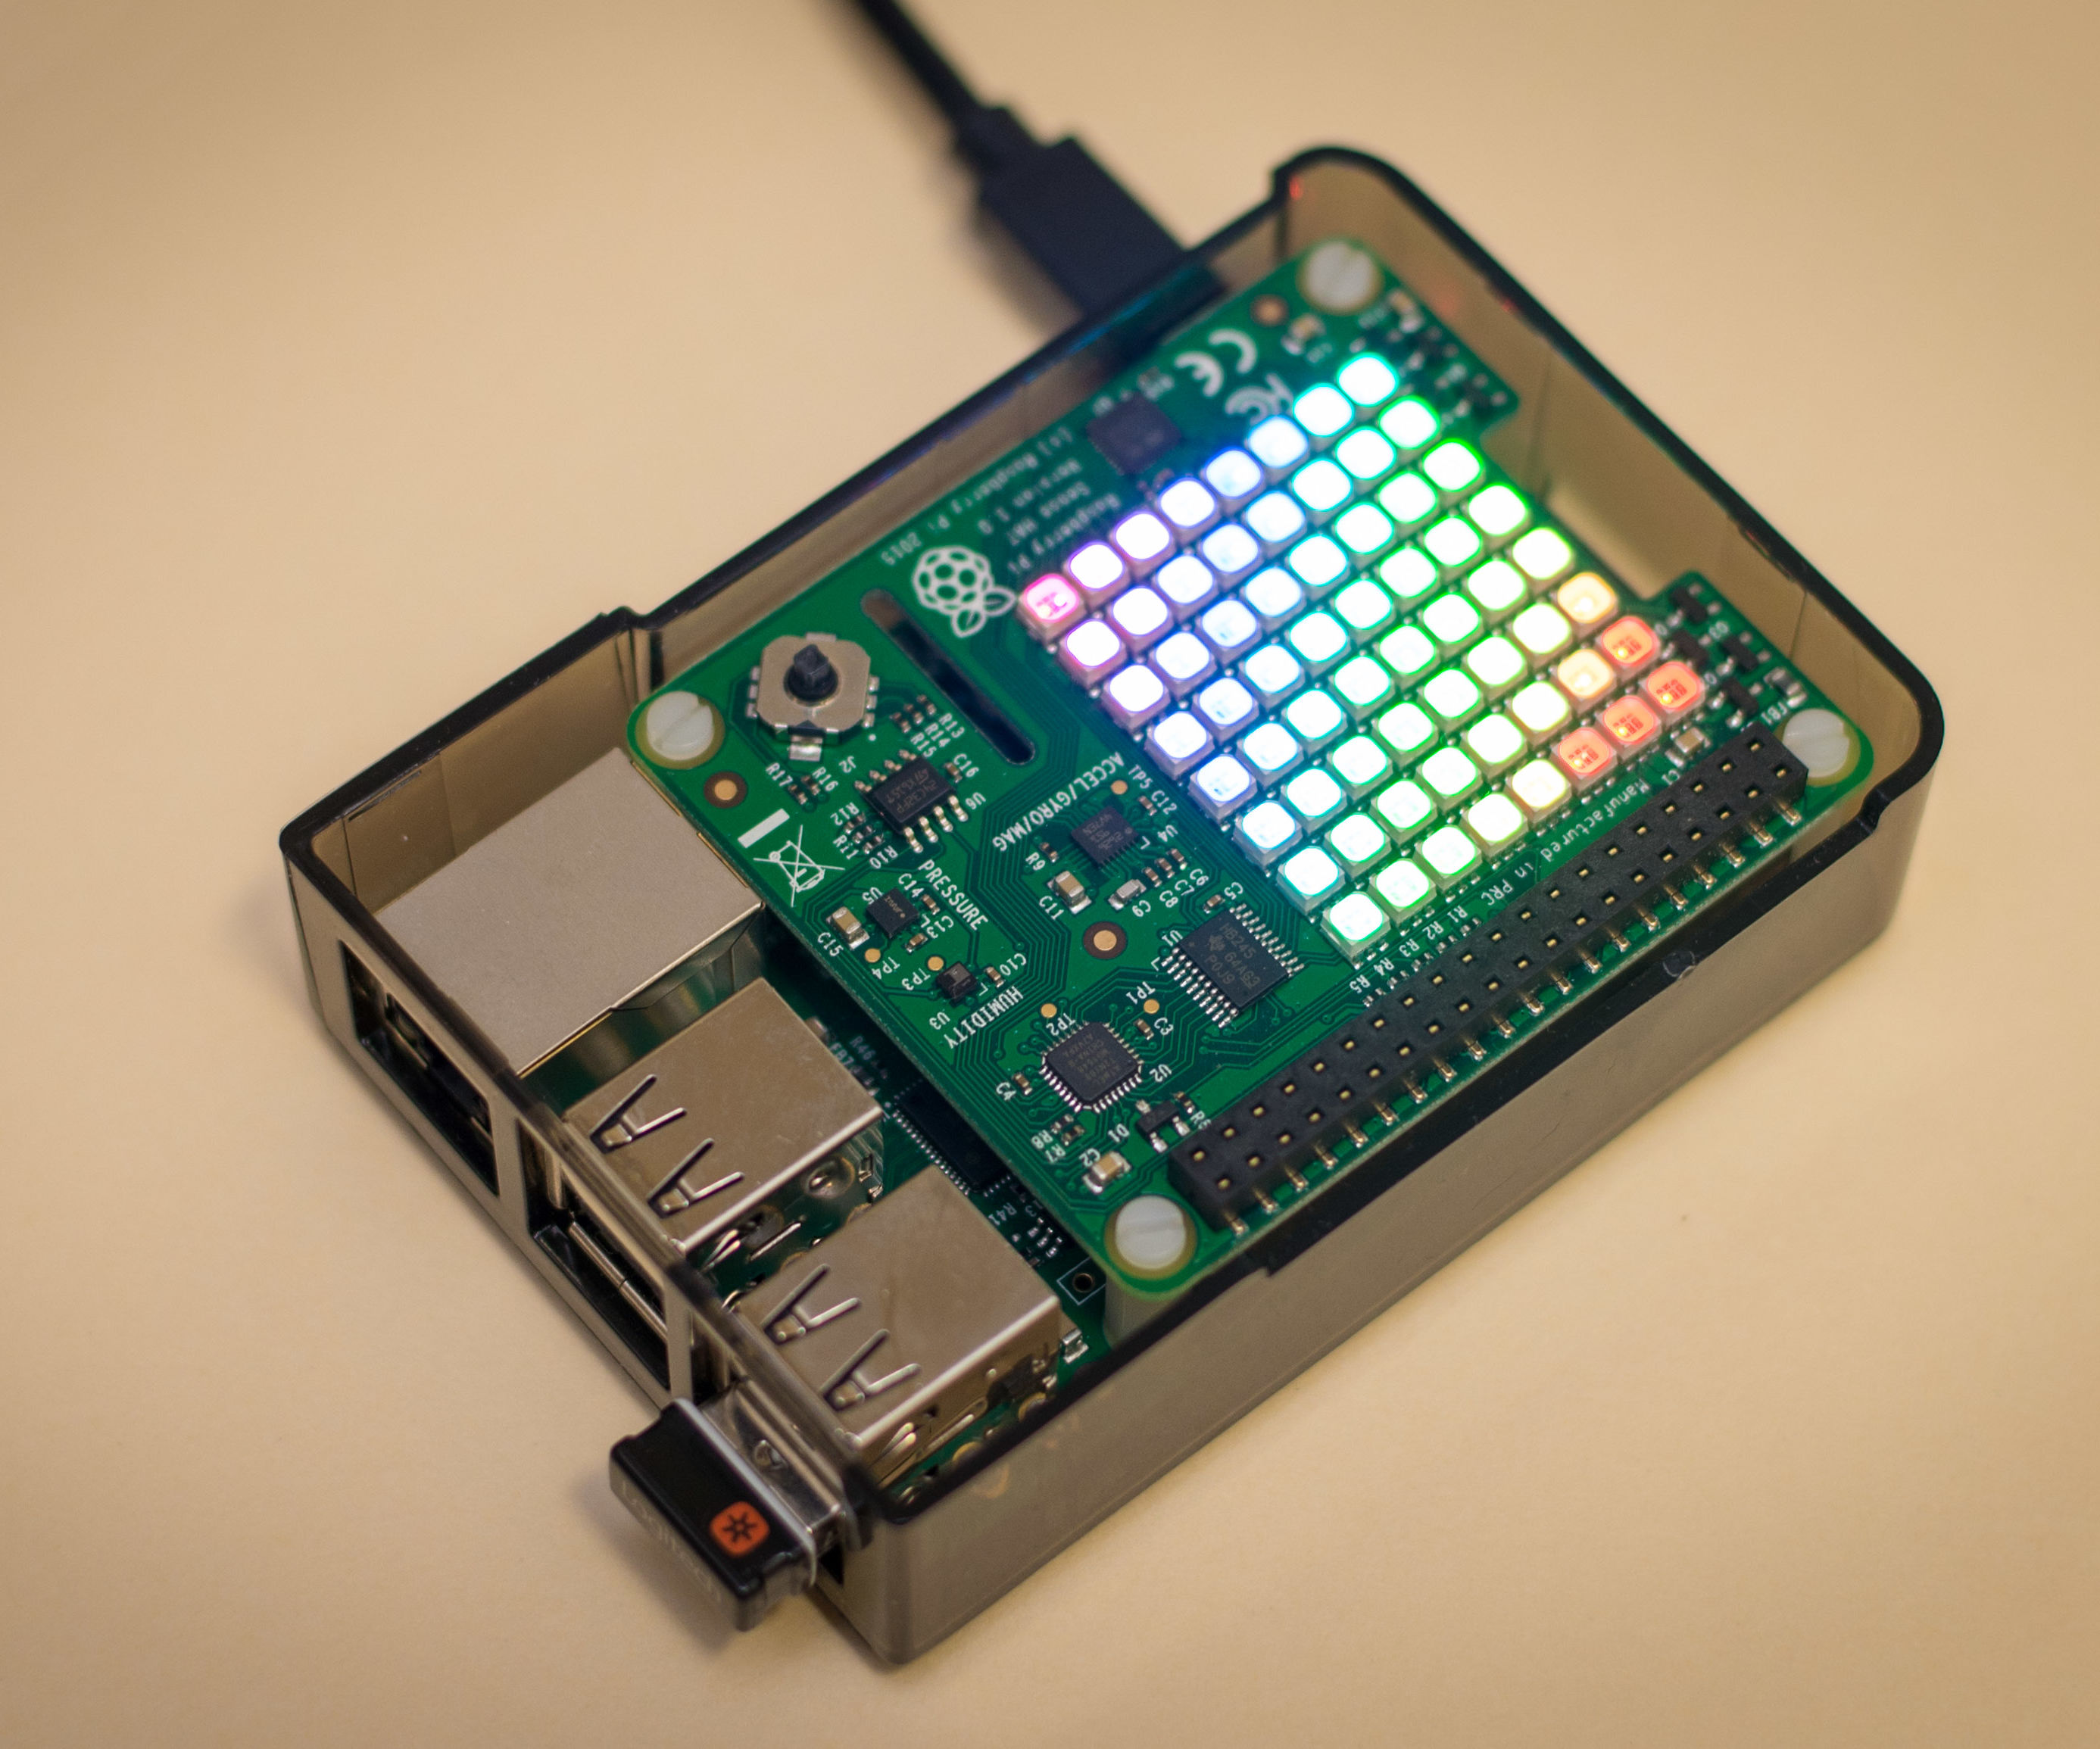 R-PiAlerts: Build Your Own WiFi Based Security System With Raspberry Pis